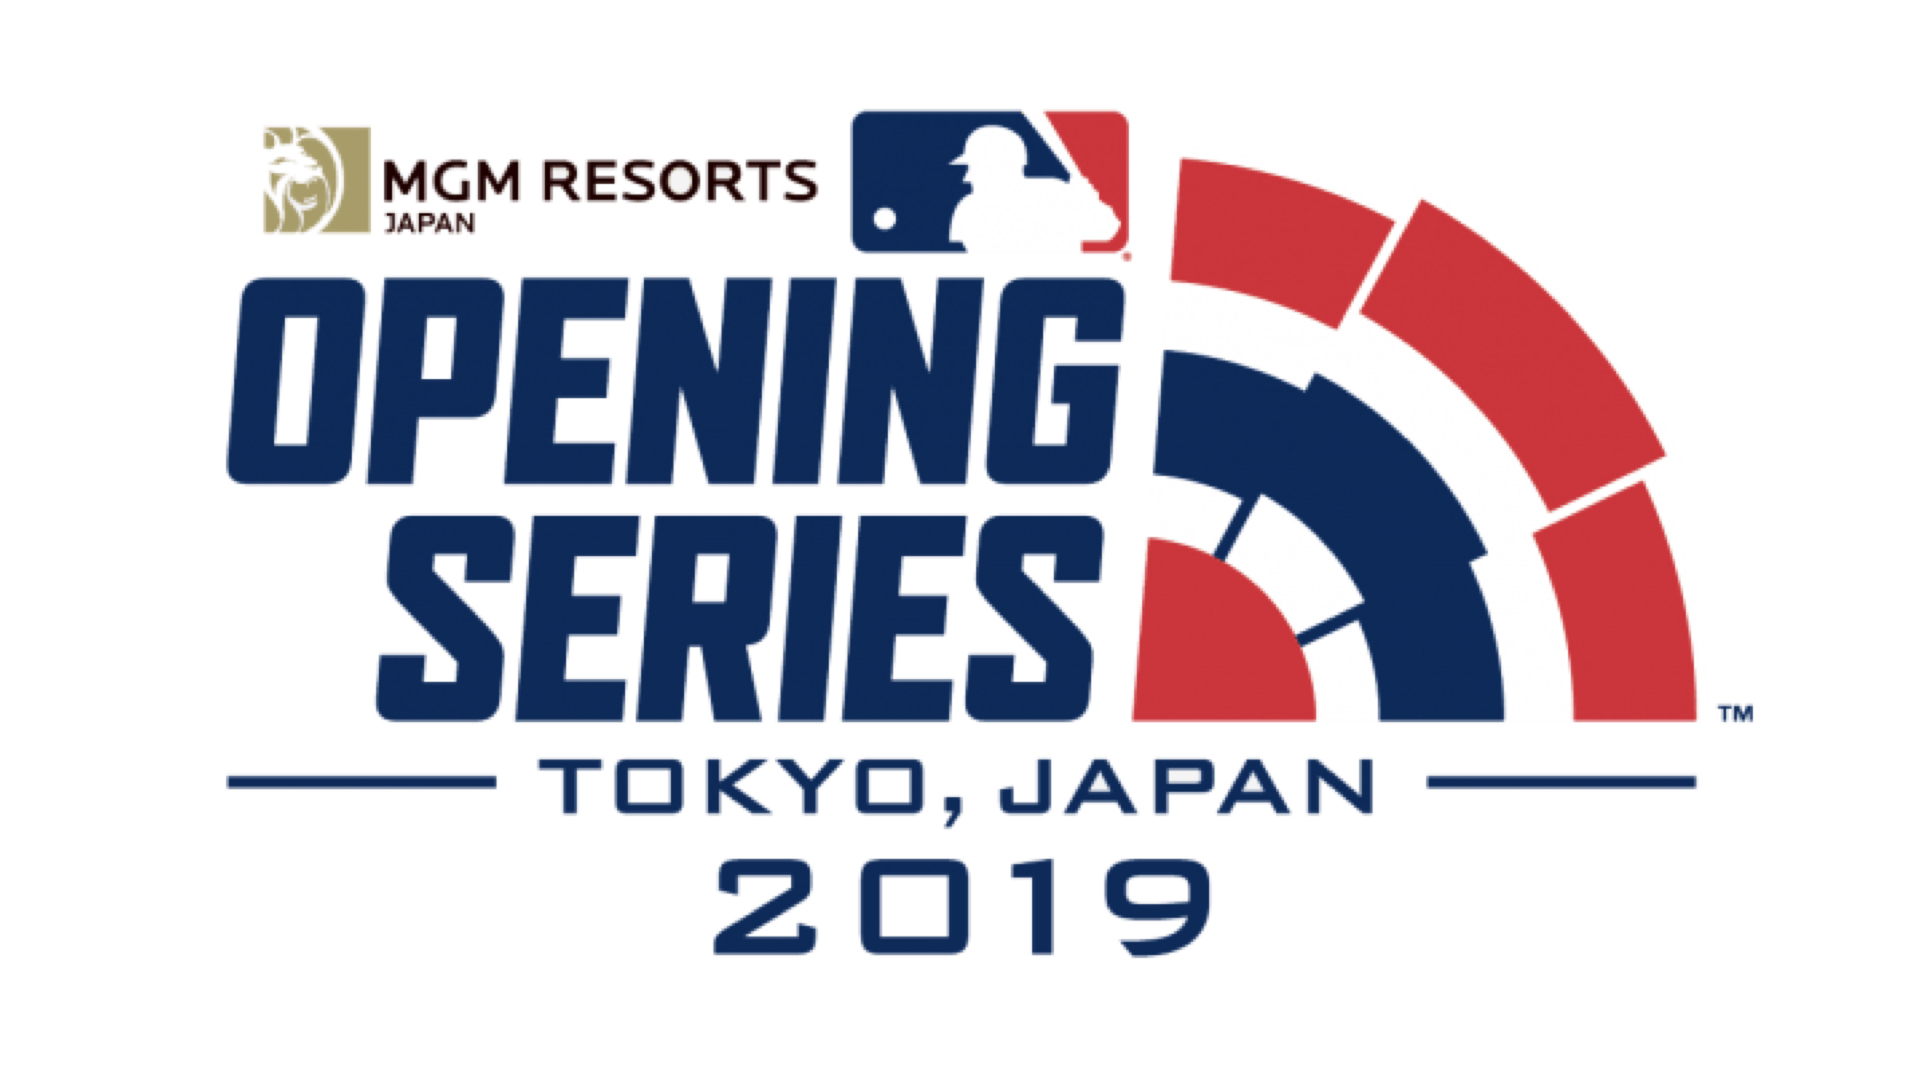 Mgm Mlb開幕戦 東京で3月に開催 Agb Nippon